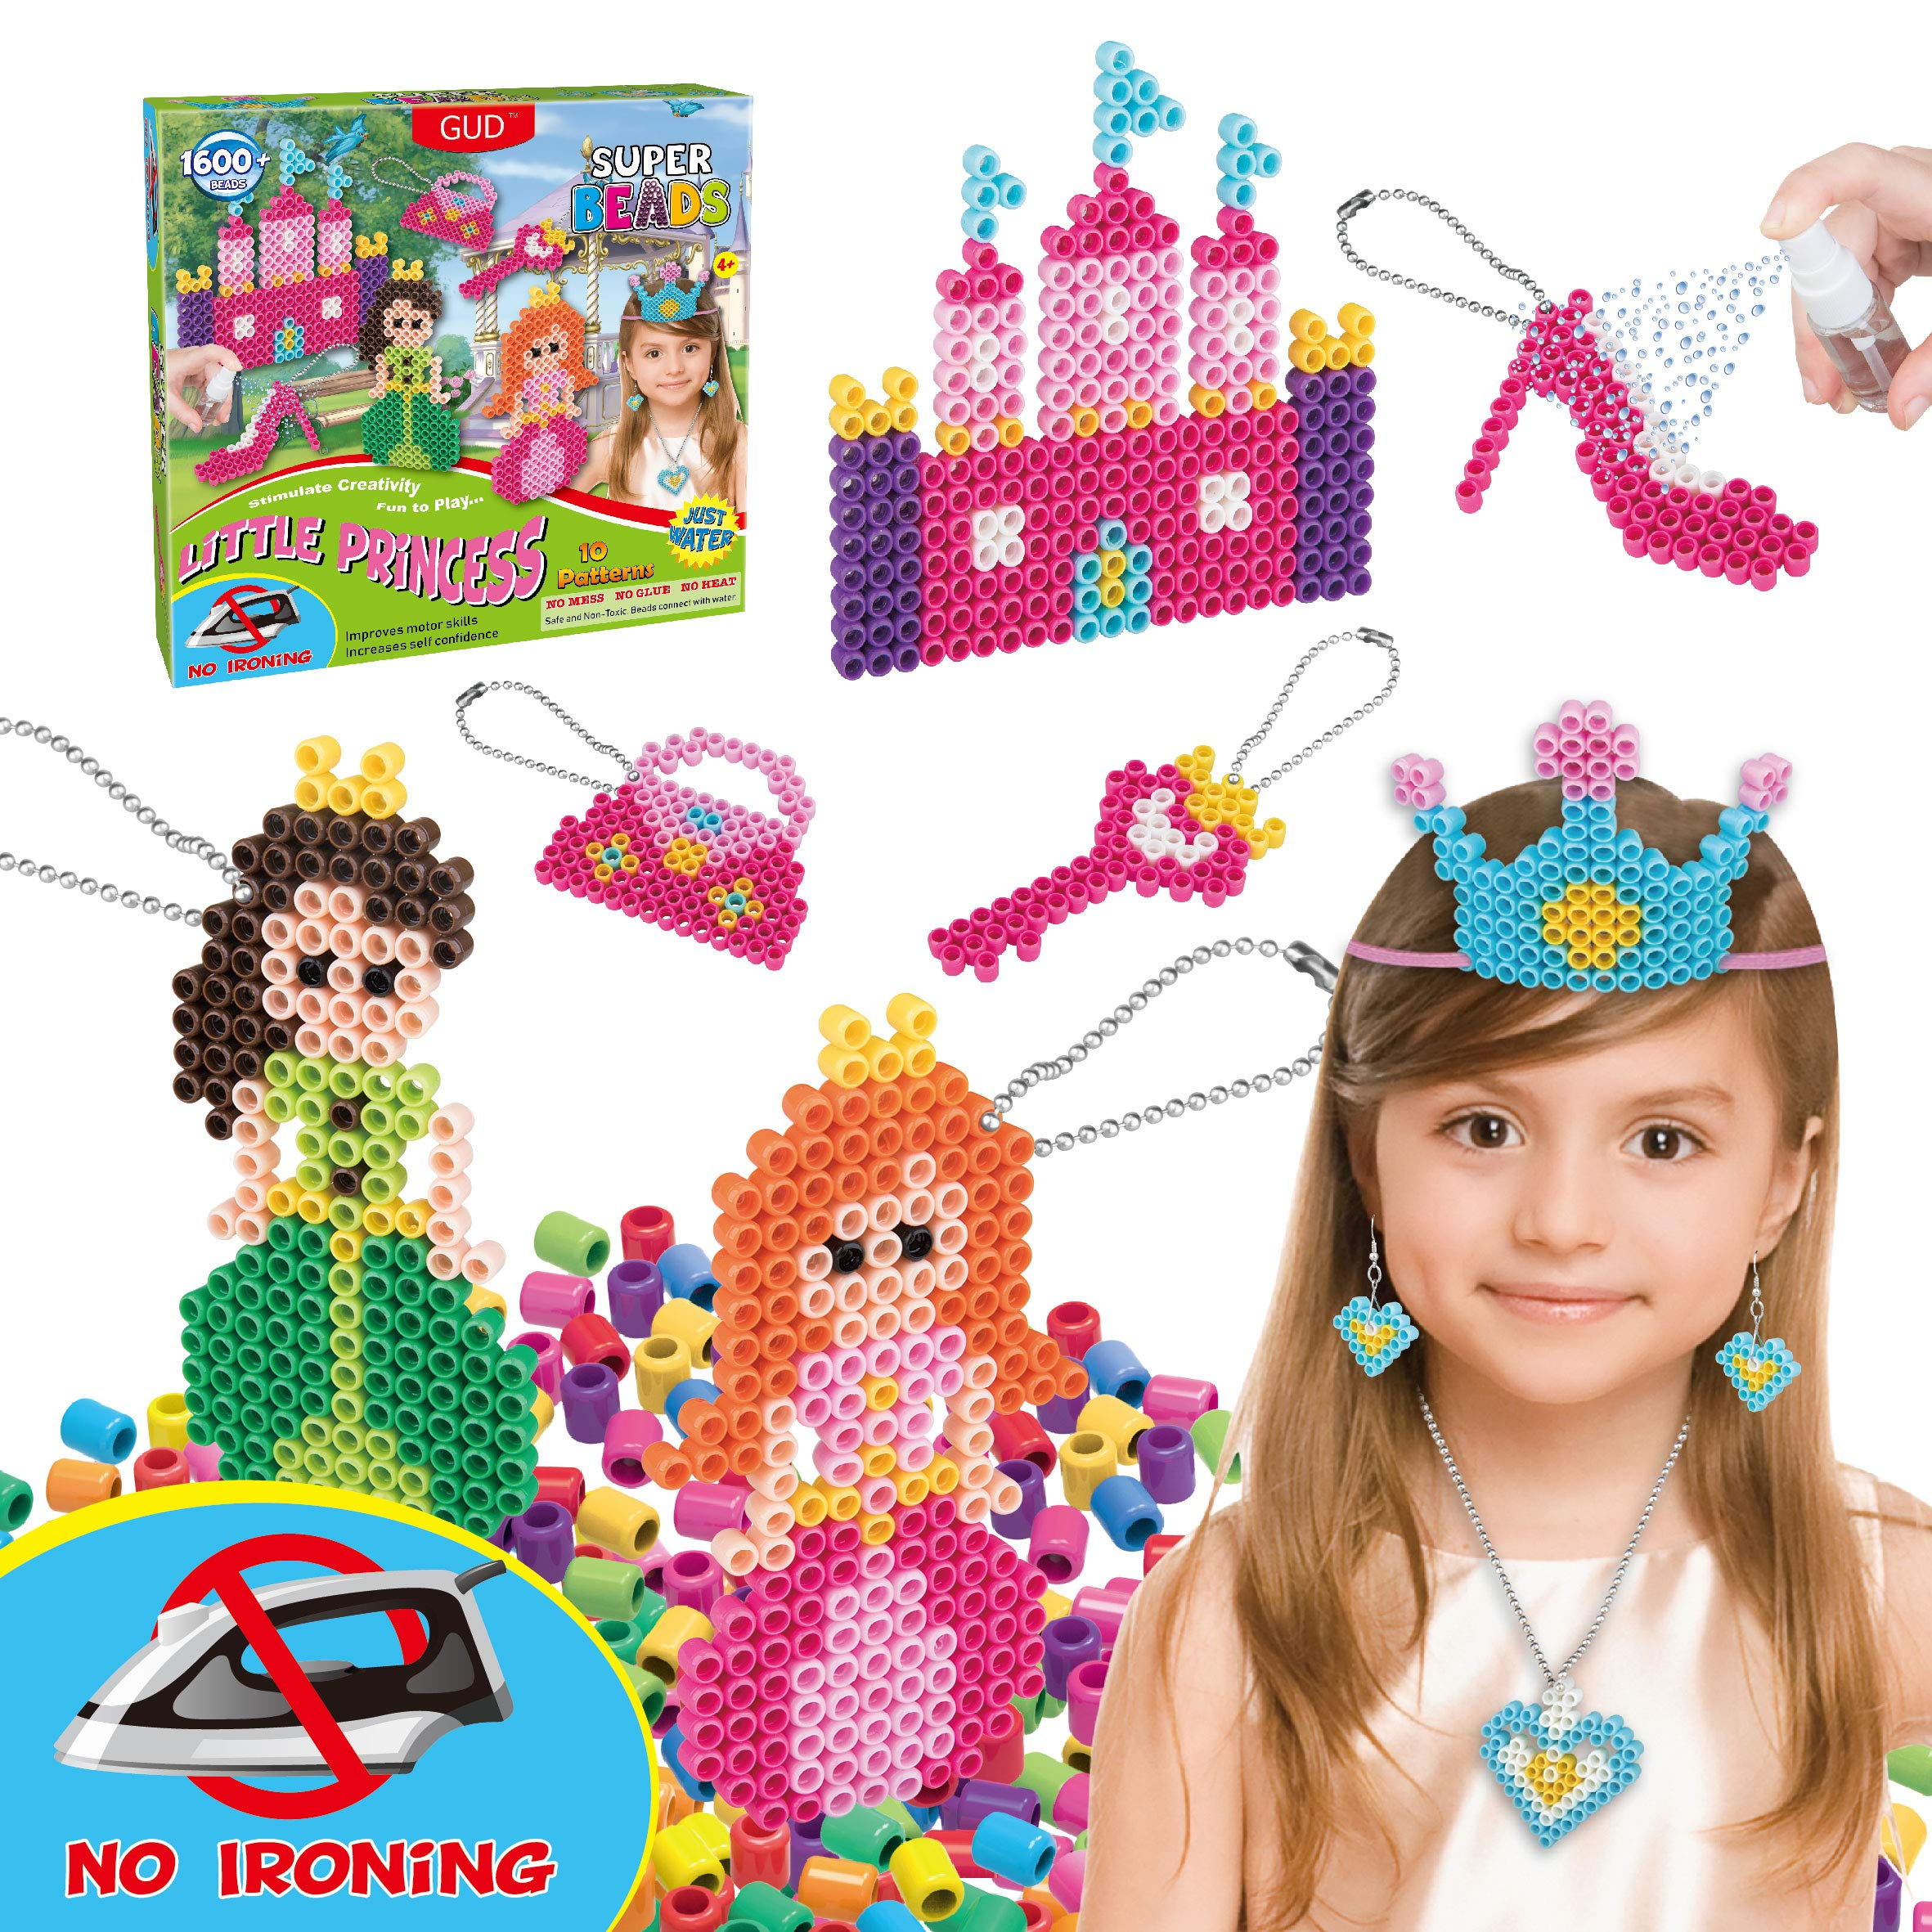 Kids DIY Water Fuse Non Iron Super Beads Girls Arts and Crafts Toy Set. Girls Indoor Activity Fun Project Little Princess Crafts Kit for Girls. Birthday Gift Age 4 5 6 7 8 9 Year Old Girl Perler Beads by GUD